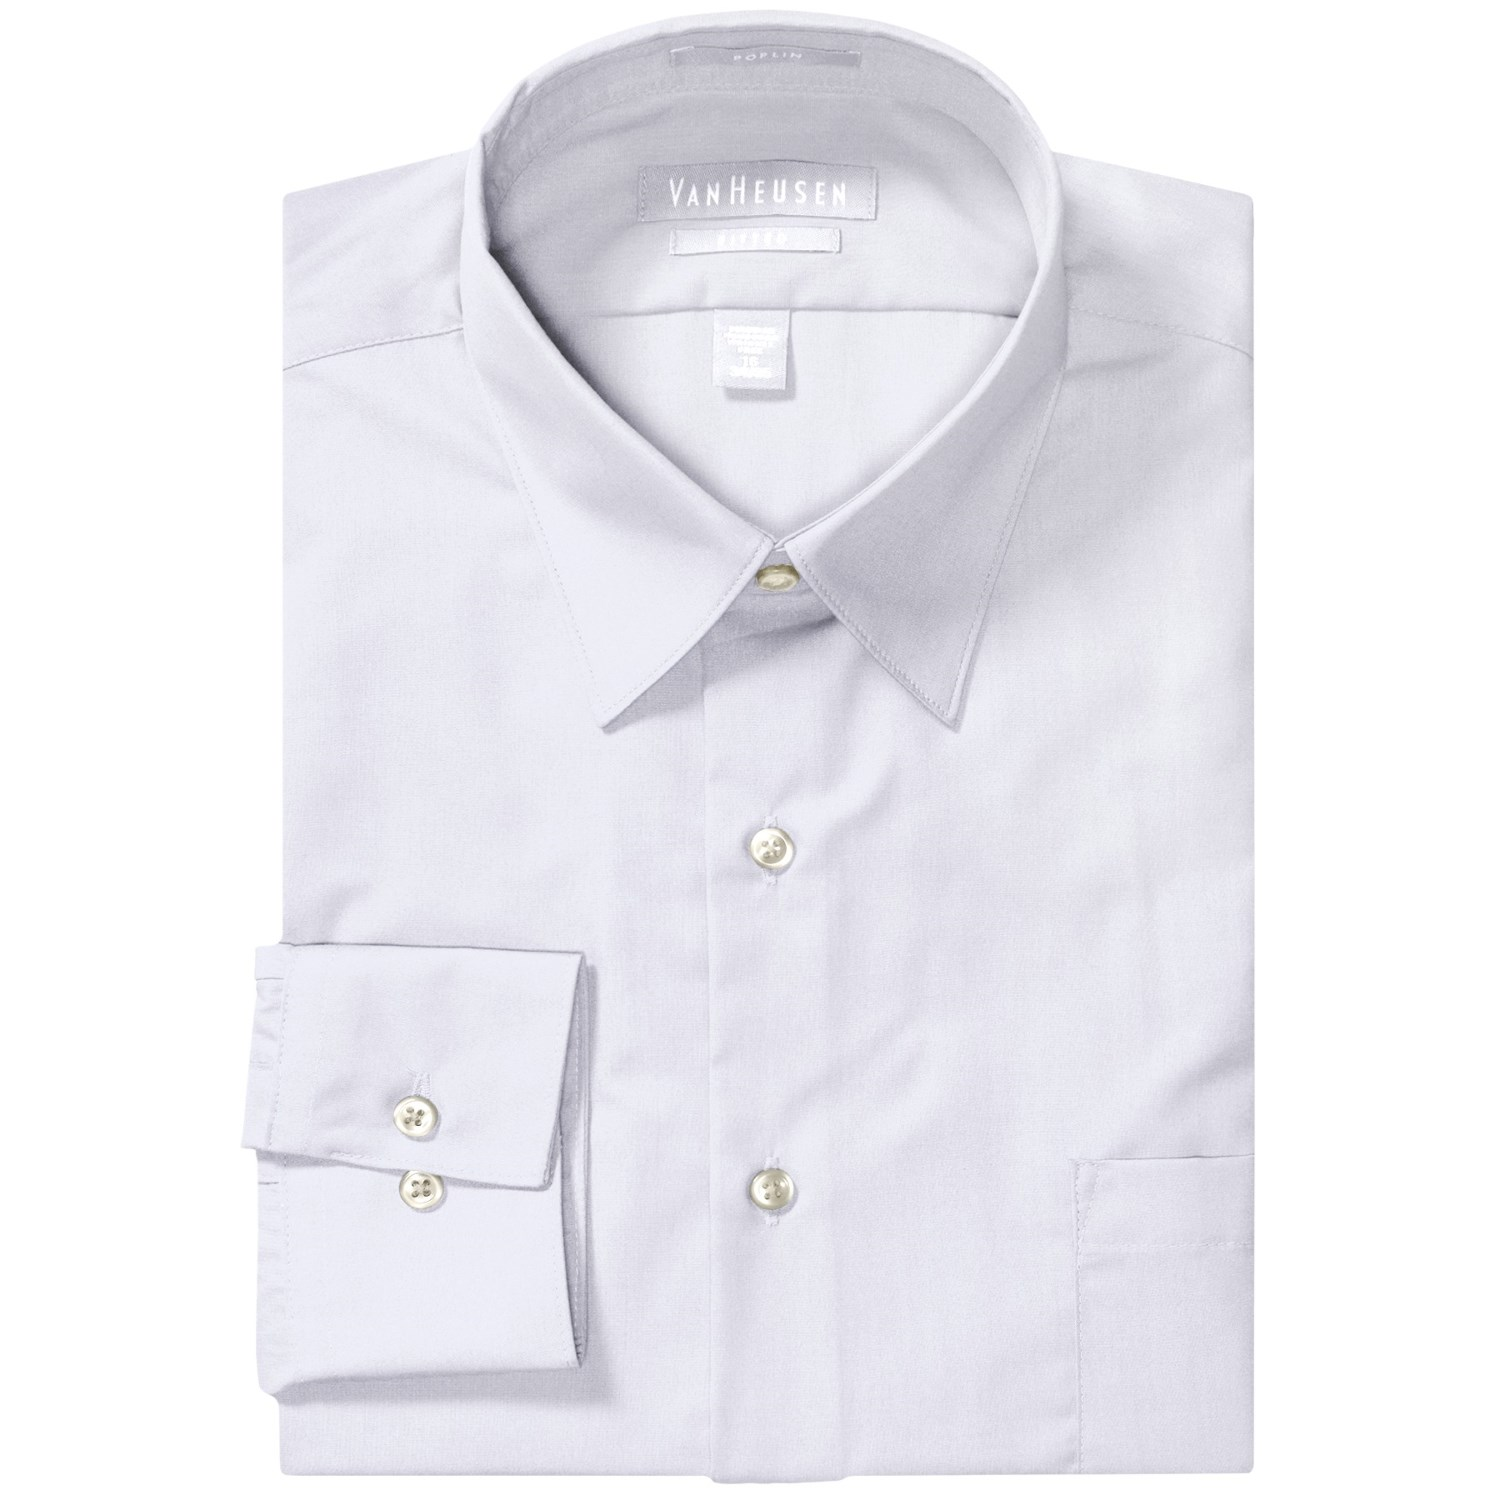 Van Heusen Basics Fitted Dress Shirt Wrinkle Free Poplin